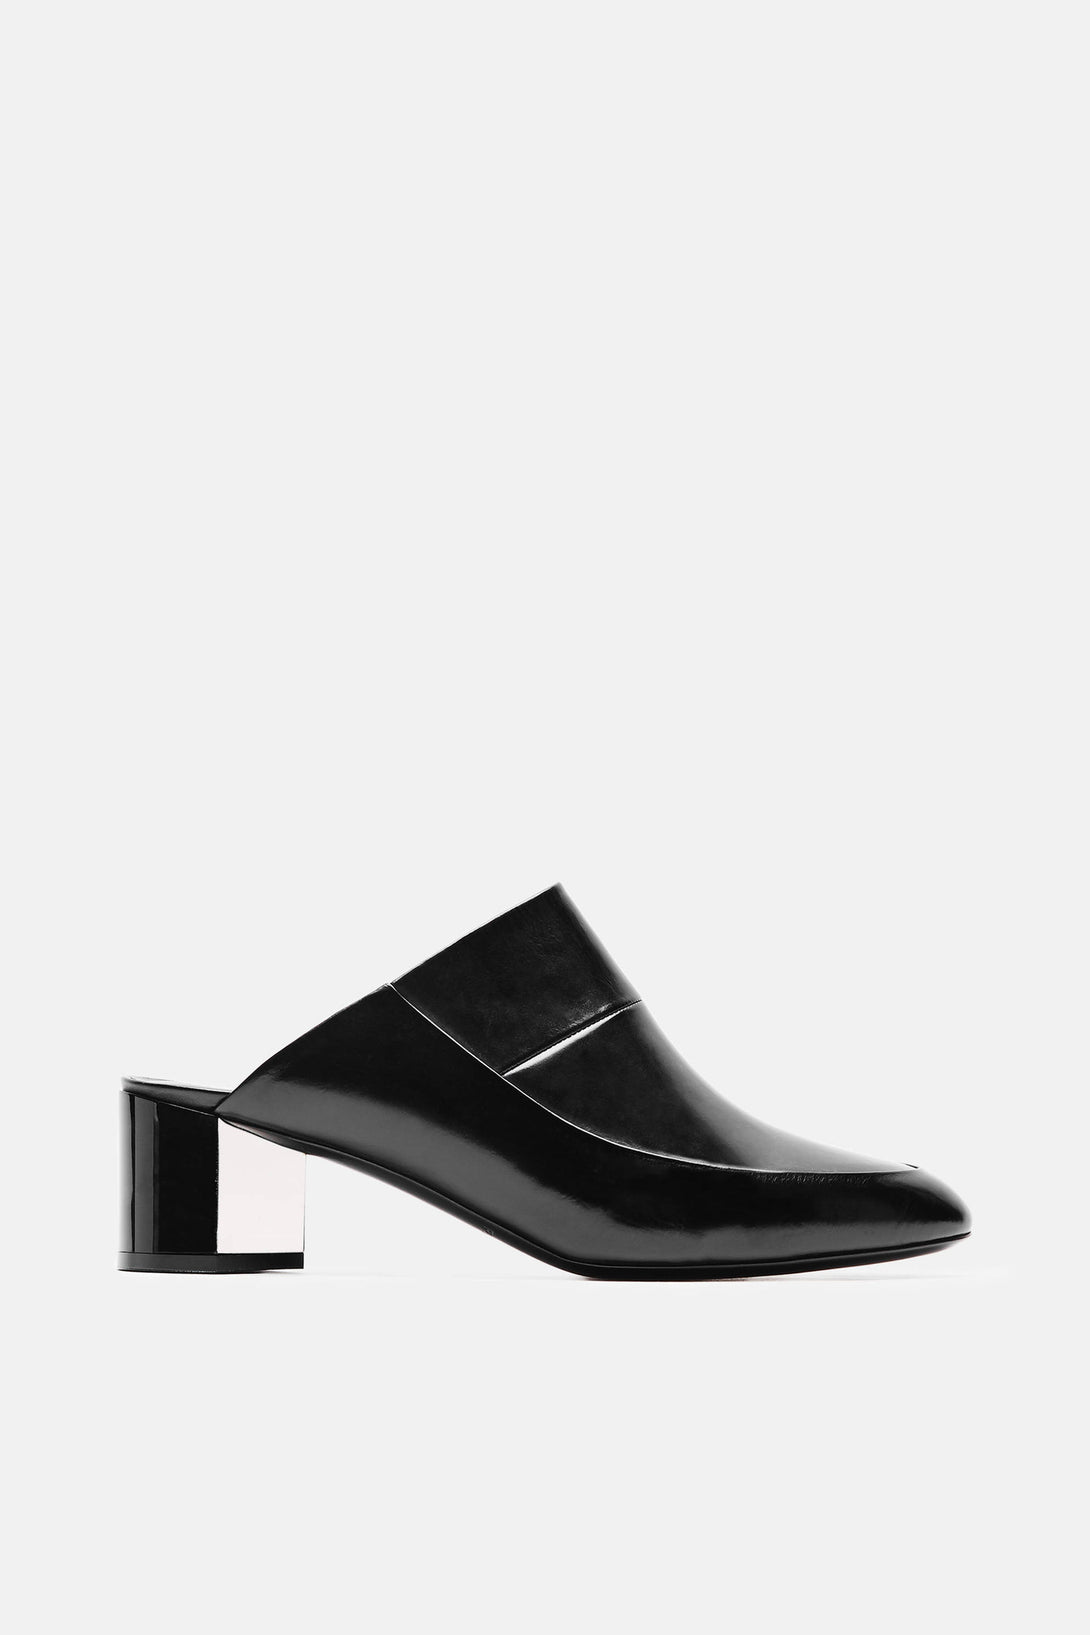 Illusion Mule - Calf Black